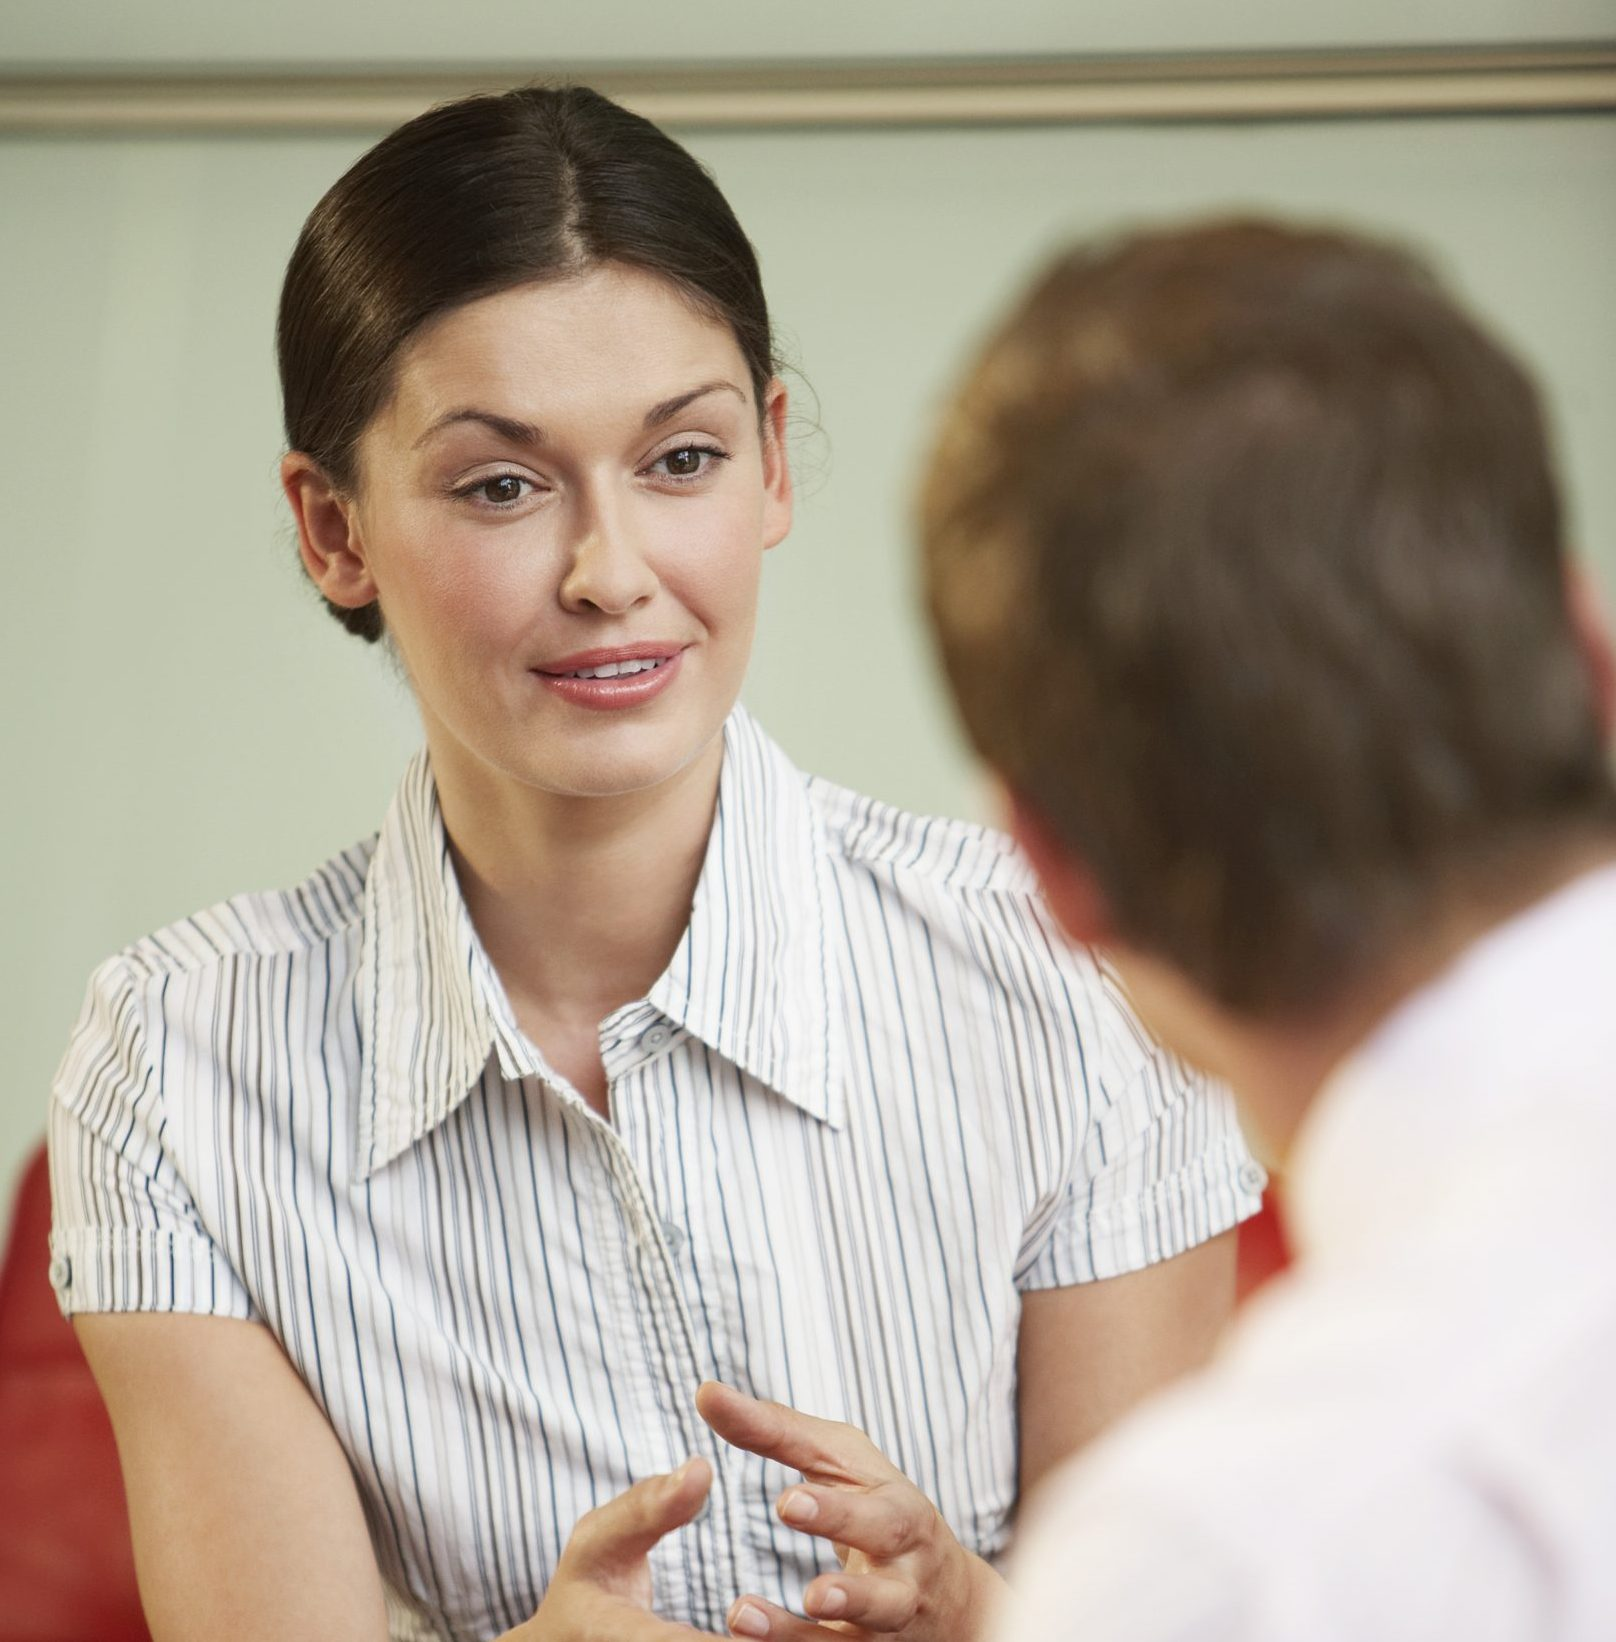 A woman doing an ACCENT REDUCTION MODIFICATION SPEECH THERAPY